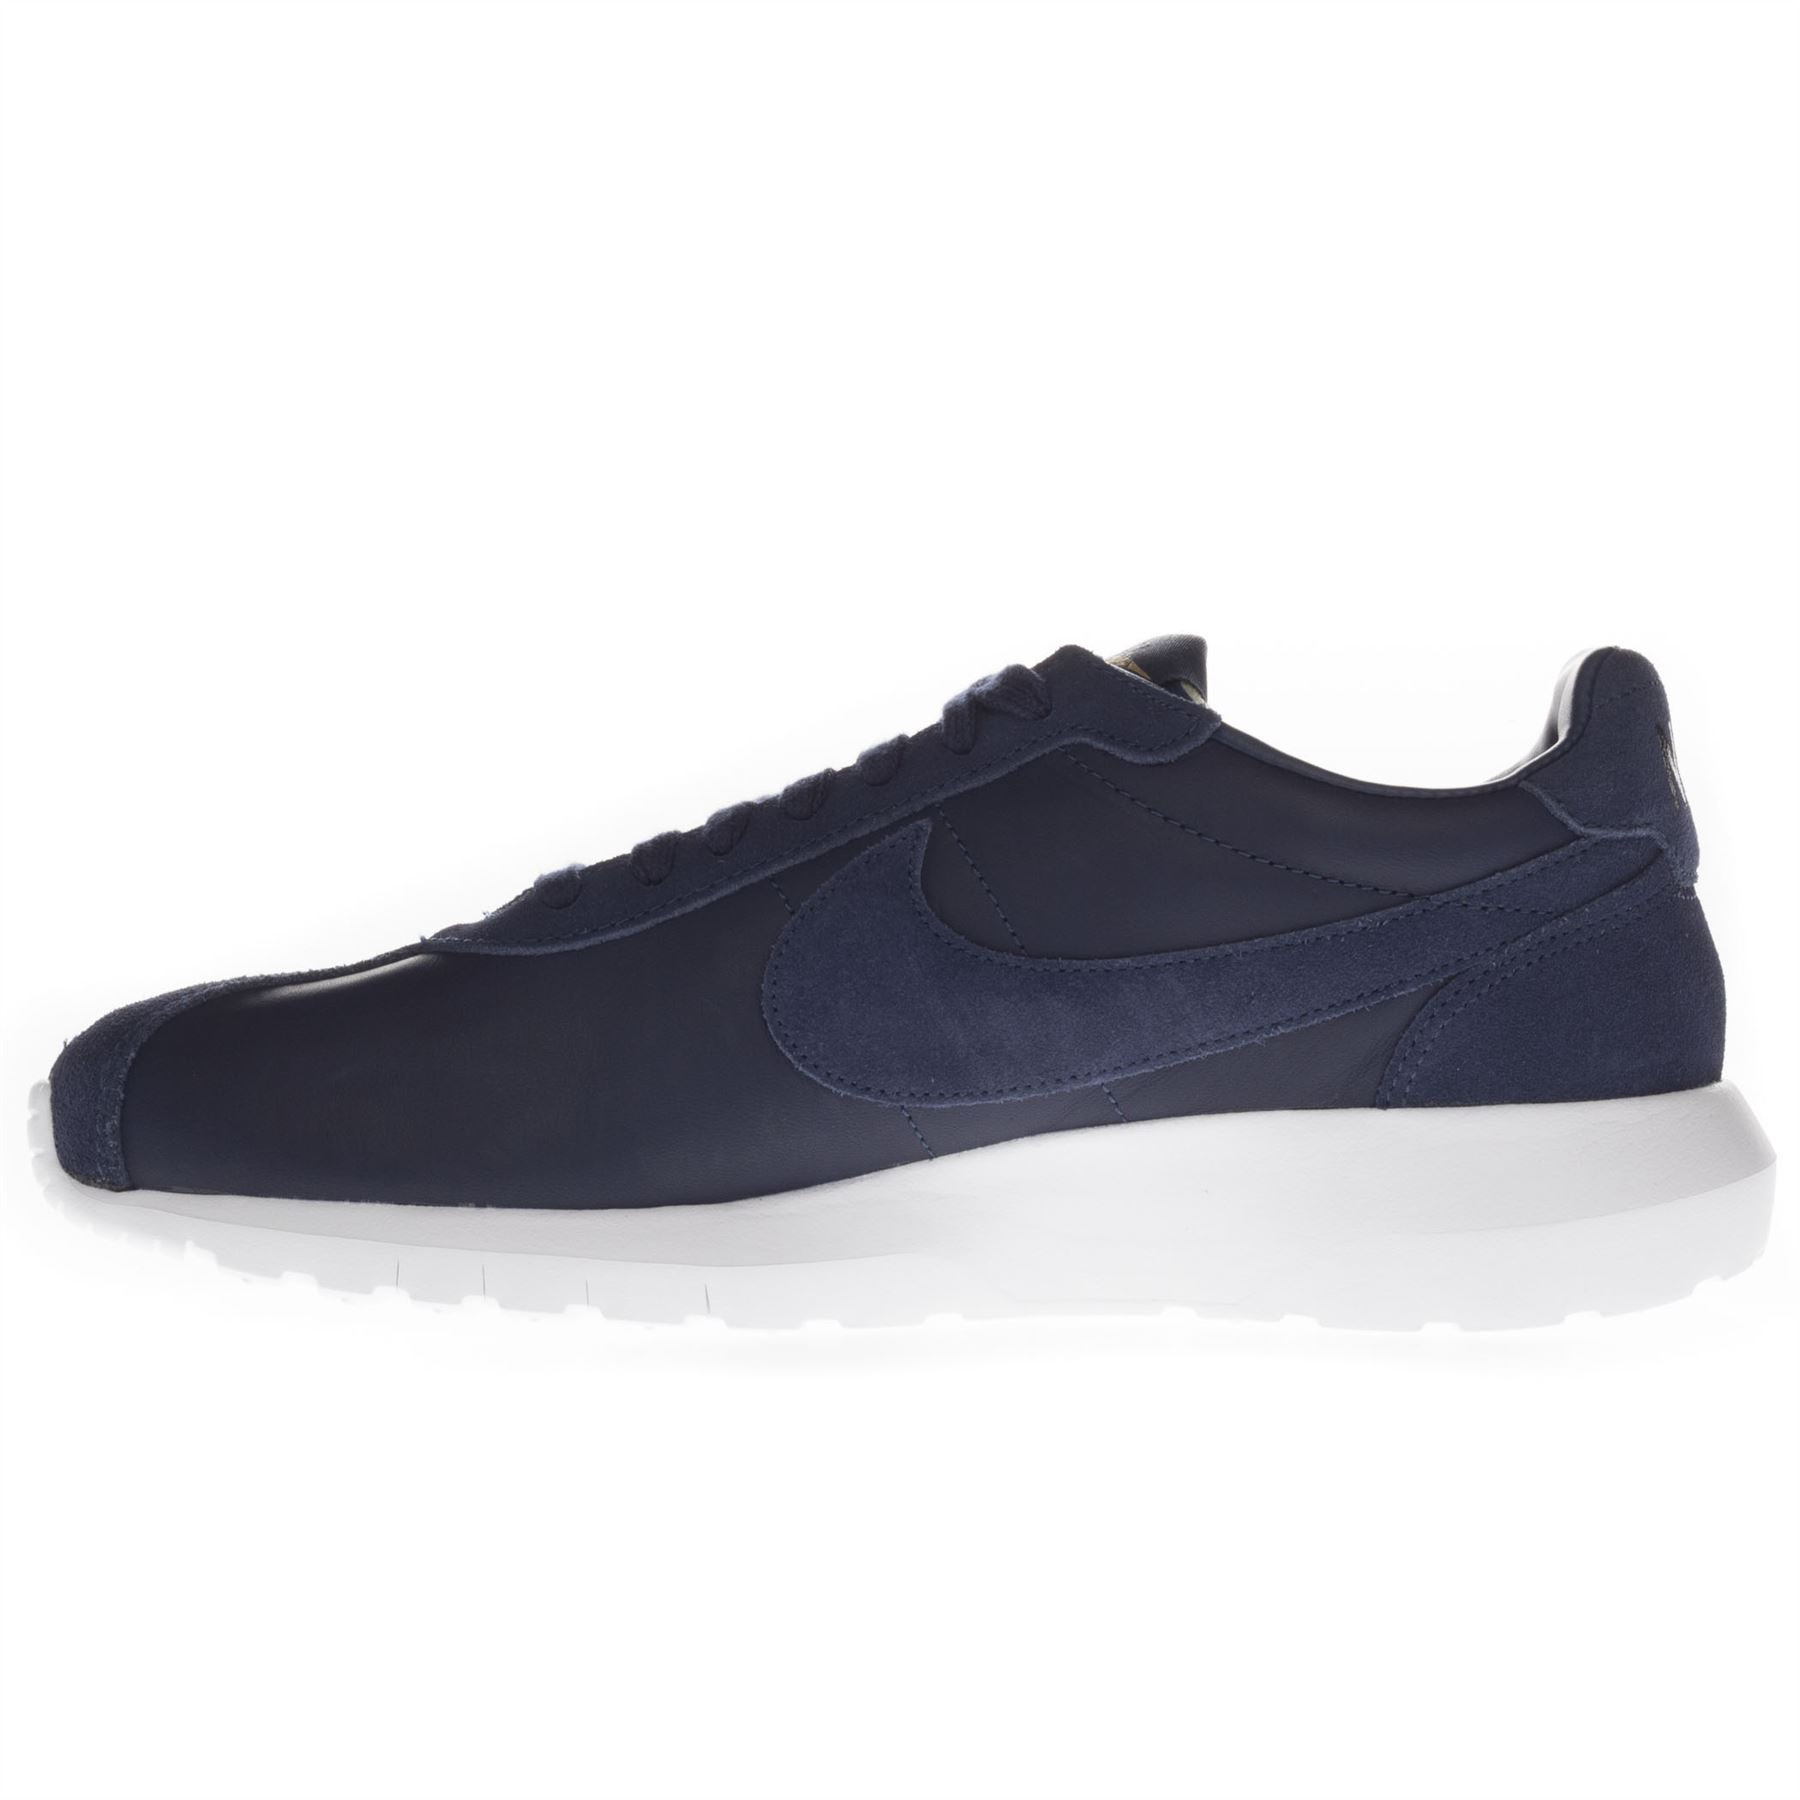 Nike Men's Roshe LD-1000 Premium QS Low Top Lace Up Trainers With Rubber Sole Turnschuhe & Sneaker Kleidung & Accessoires